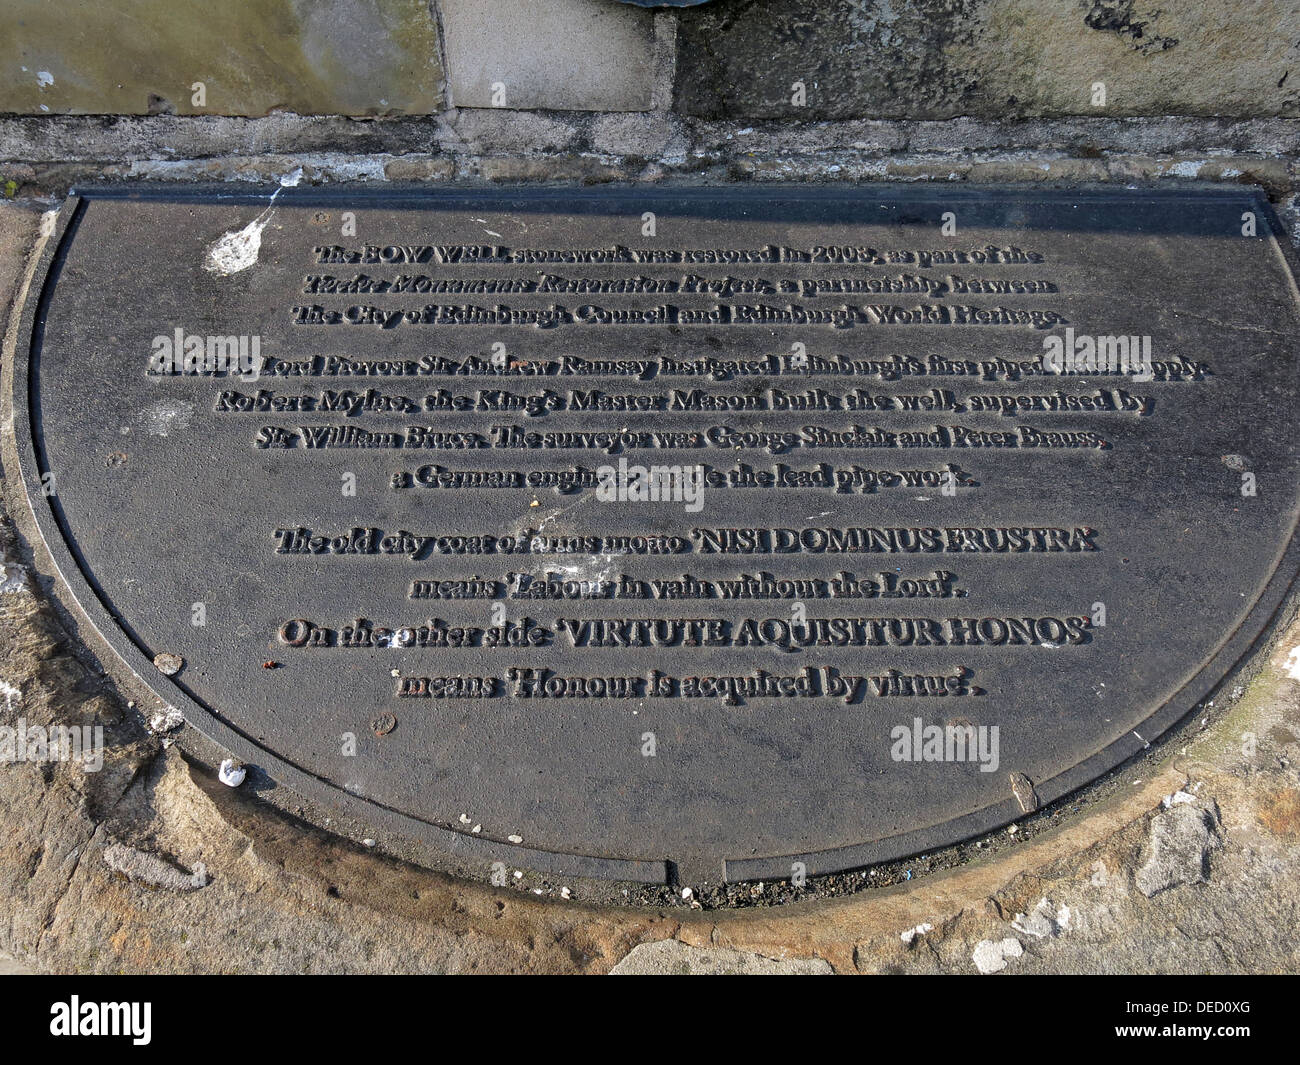 Inscription on the Grassmarket fountain, Edinburgh city, Scotland, UK - Stock Image